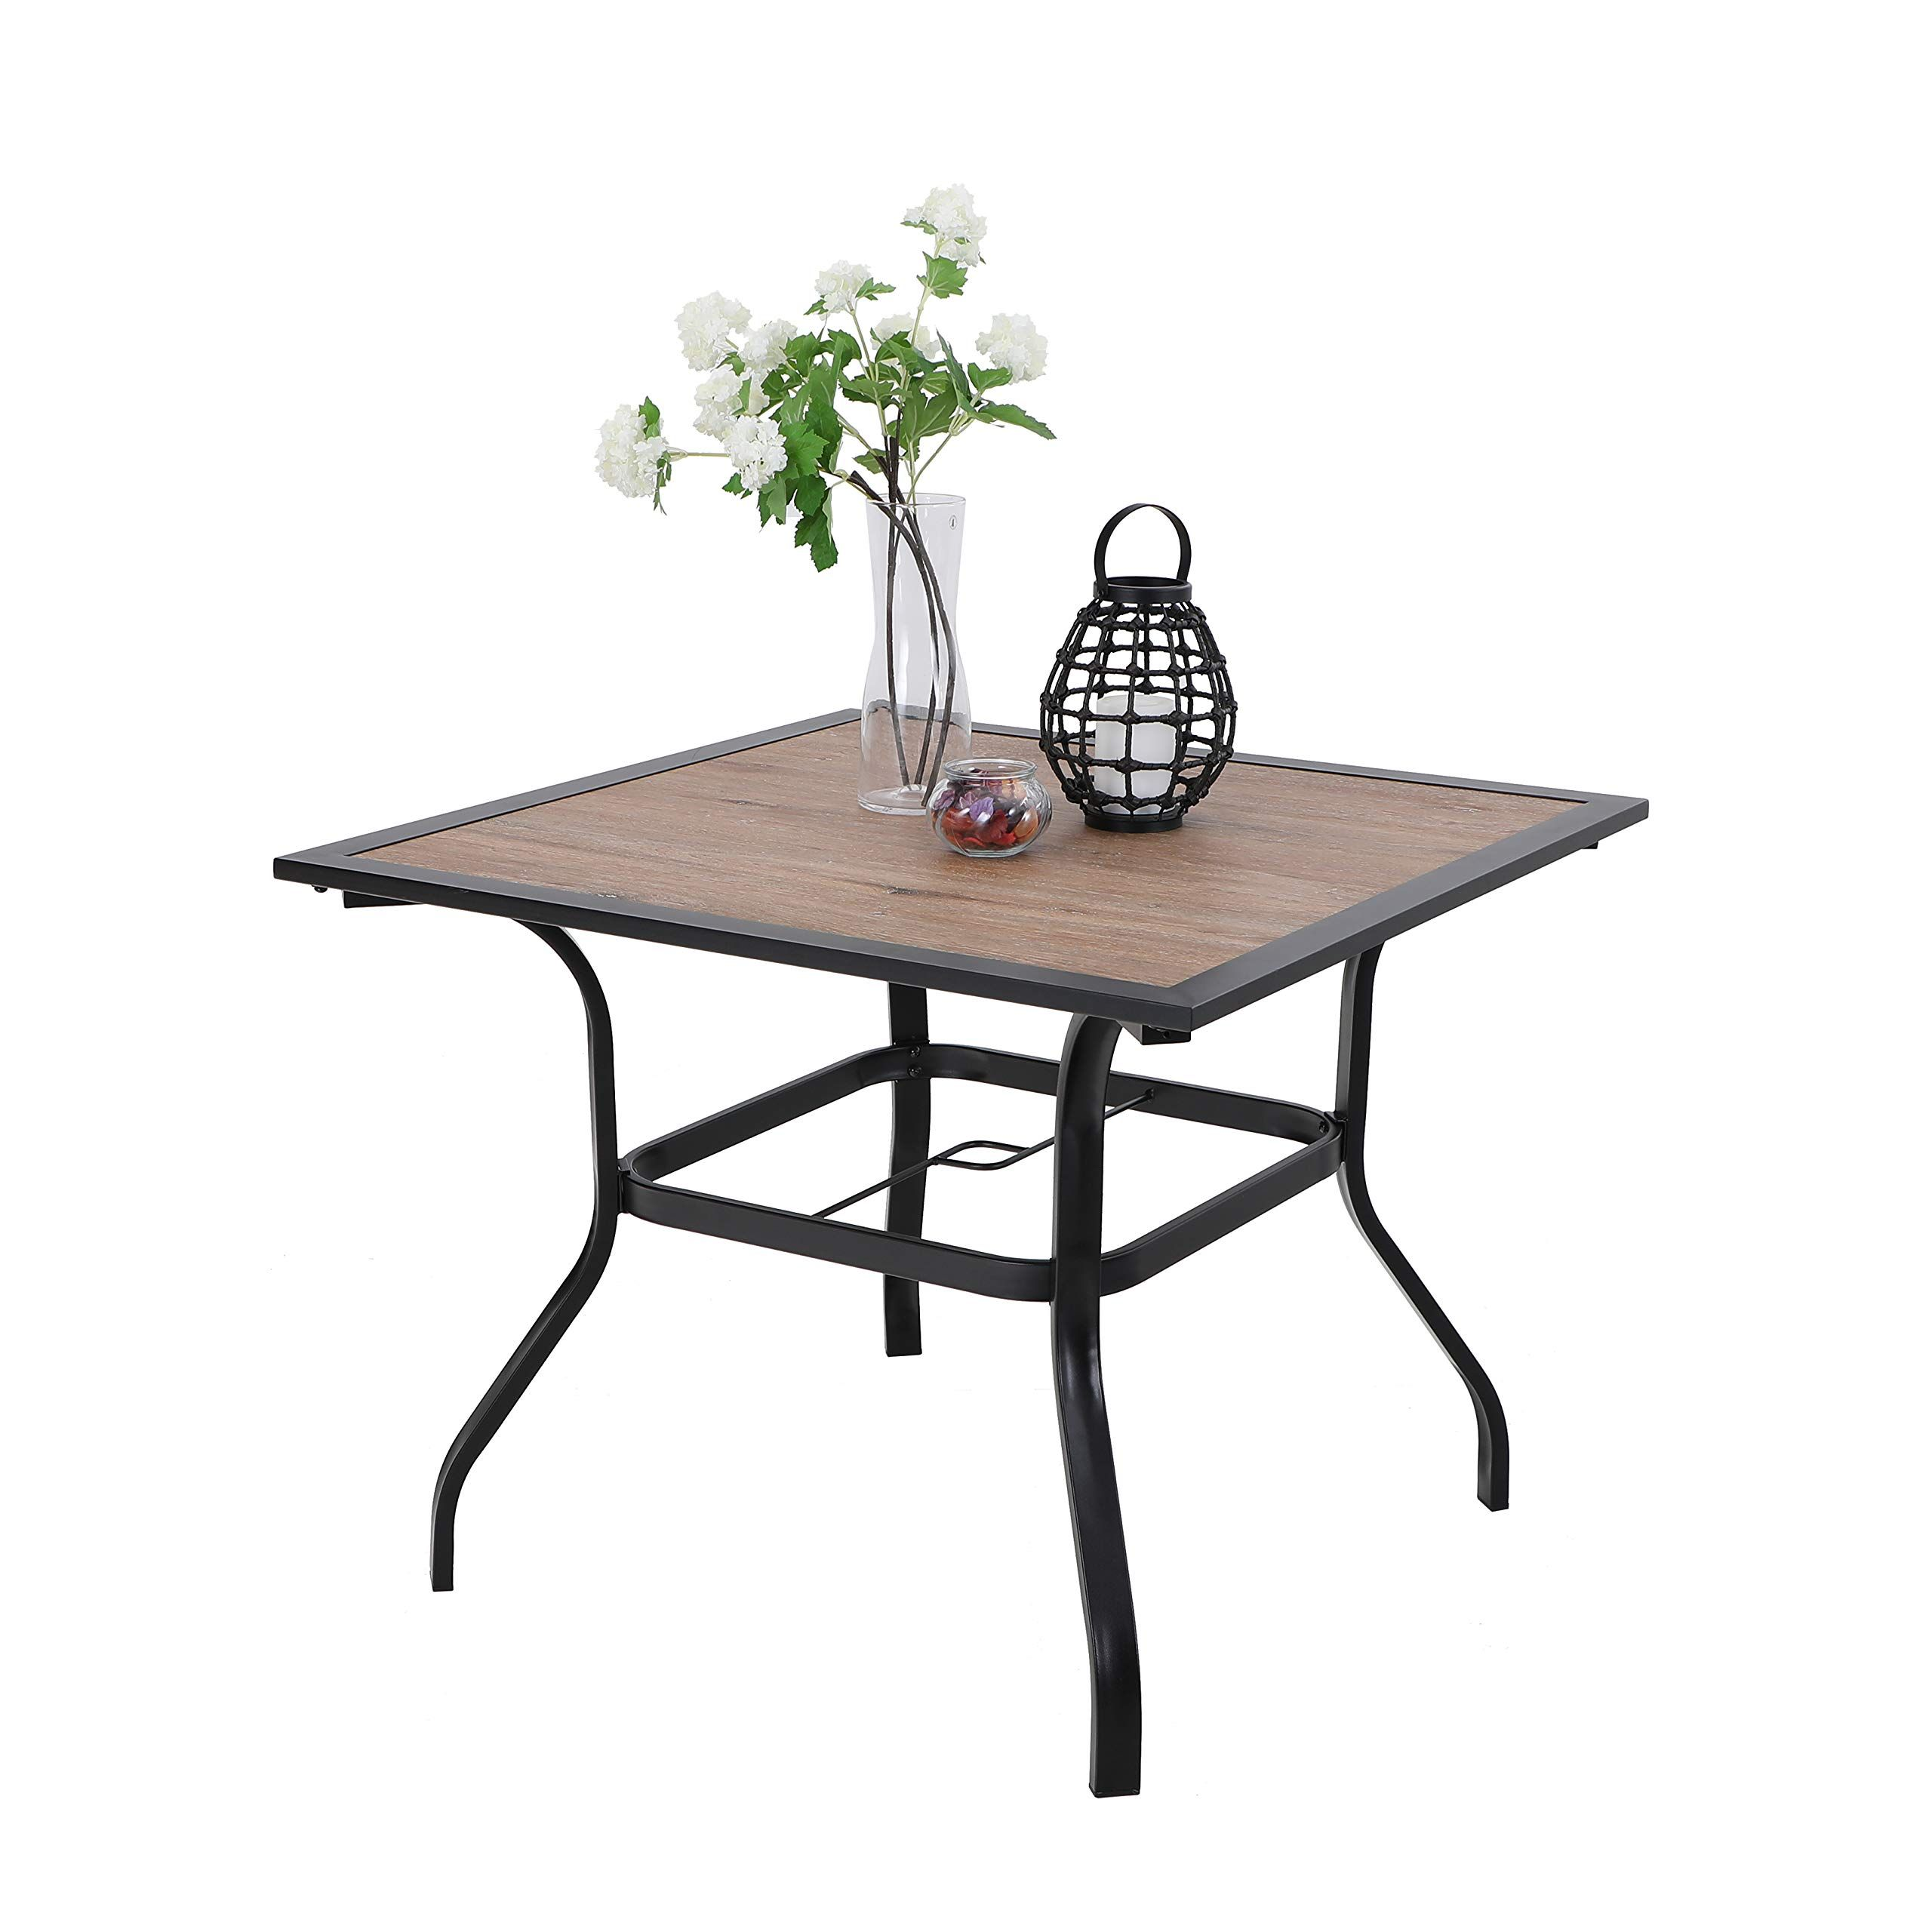 Mf Studio Patio Dinning Table 37 Square Backyard Outdoor Bistro Table Patio Furniture Table With Wooden Like Surface Top 1 7 Umbrella Hole Steel Frame Wal Patio Furniture Table Bistro Table Bistro table with umbrella hole